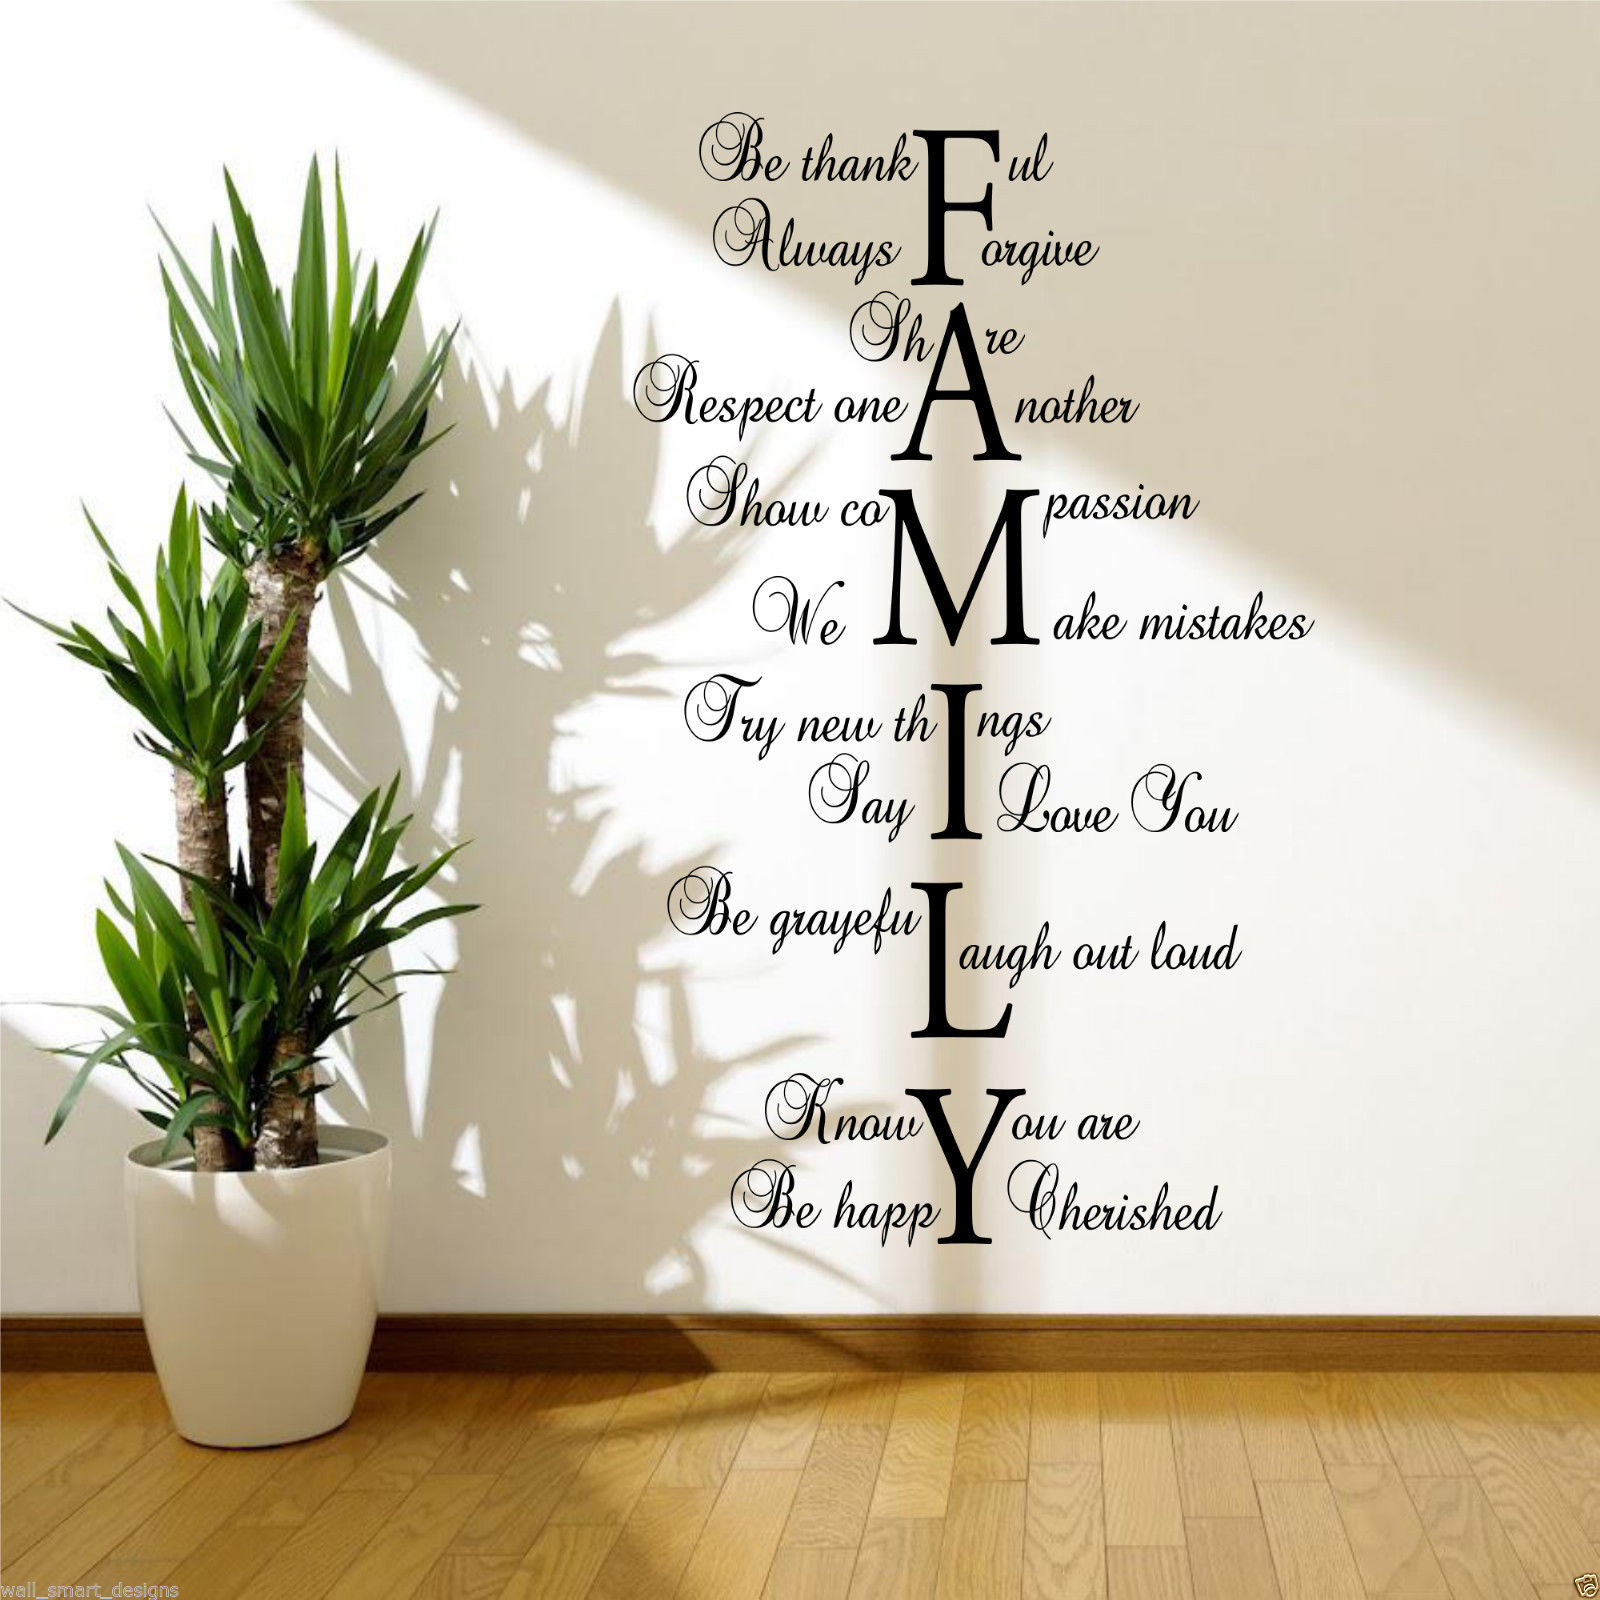 Motivational Inspirational Quotes: FAMILY LOVE LIFE Wall Art Sticker Quote Room Decal Mural